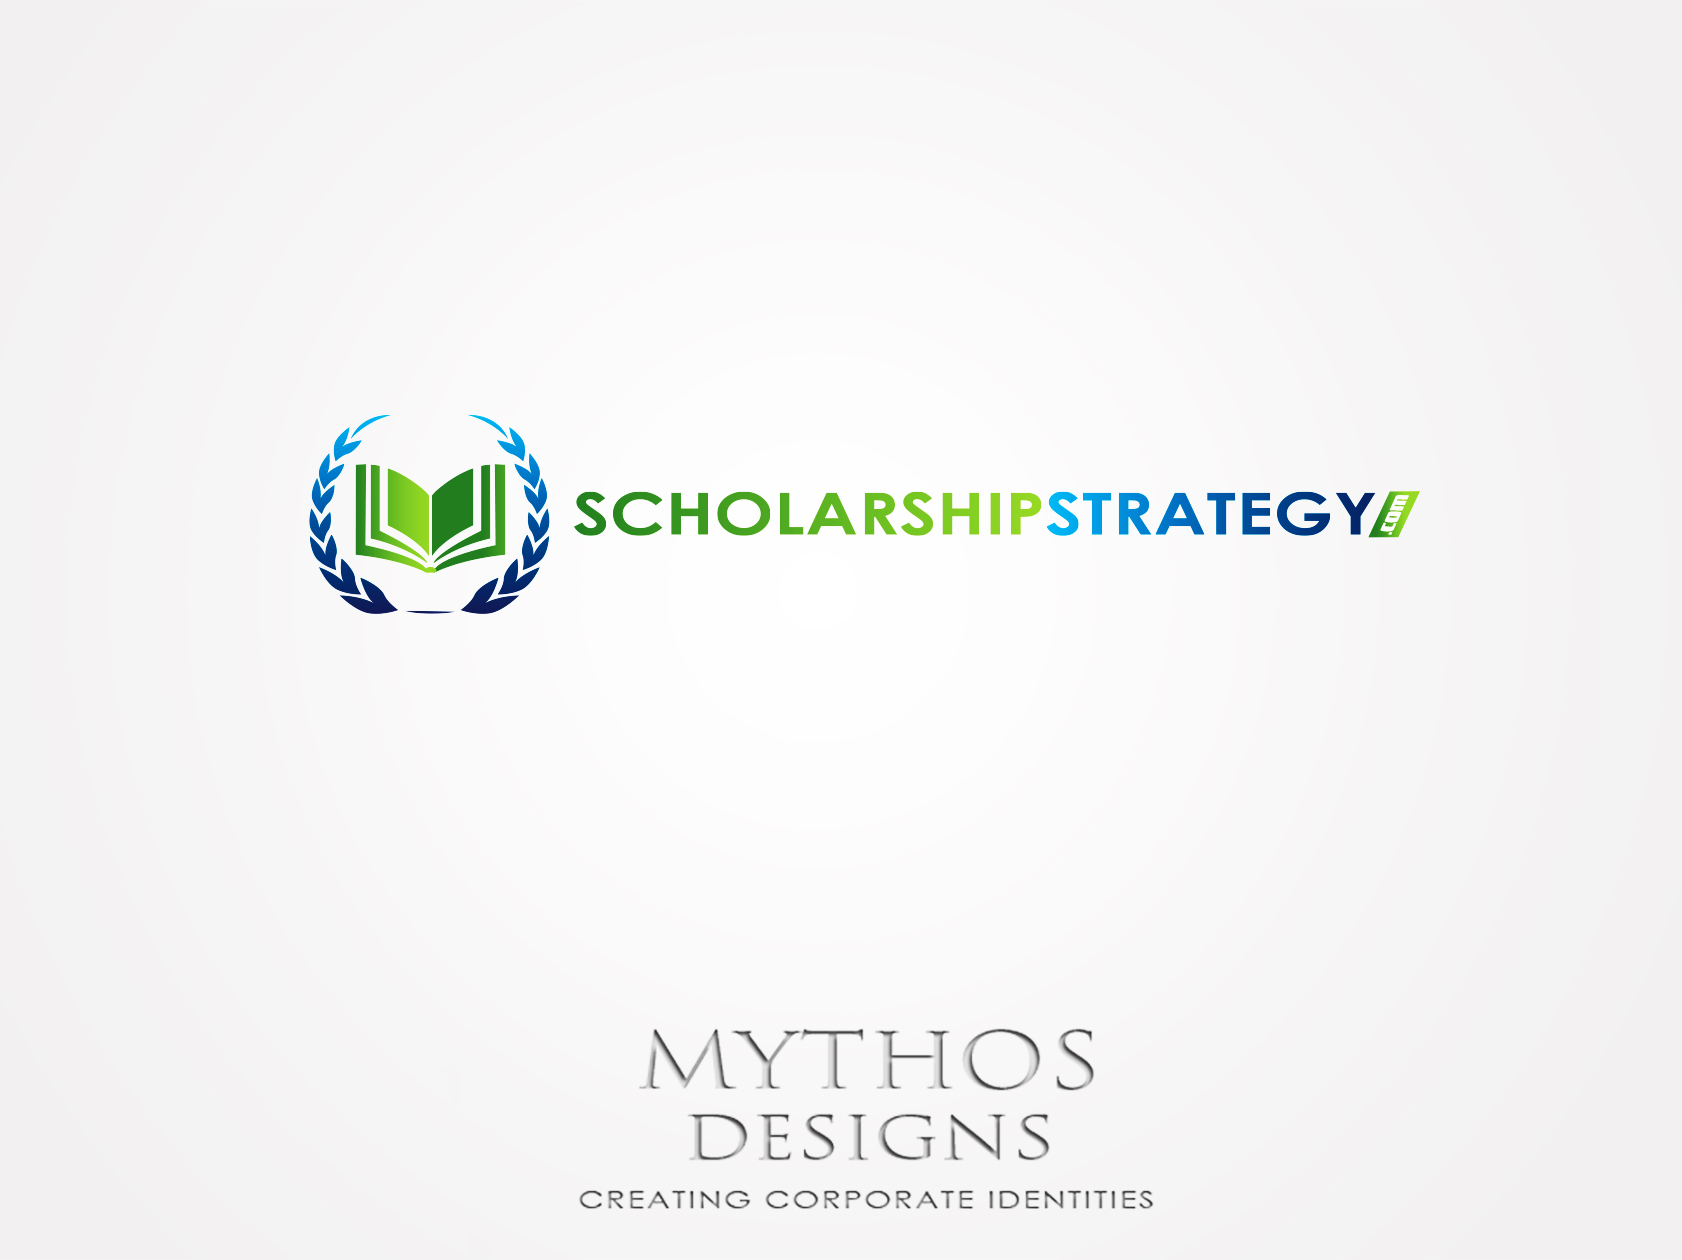 Logo Design by Mythos Designs - Entry No. 62 in the Logo Design Contest Captivating Logo Design for Scholarshipstrategy.com.